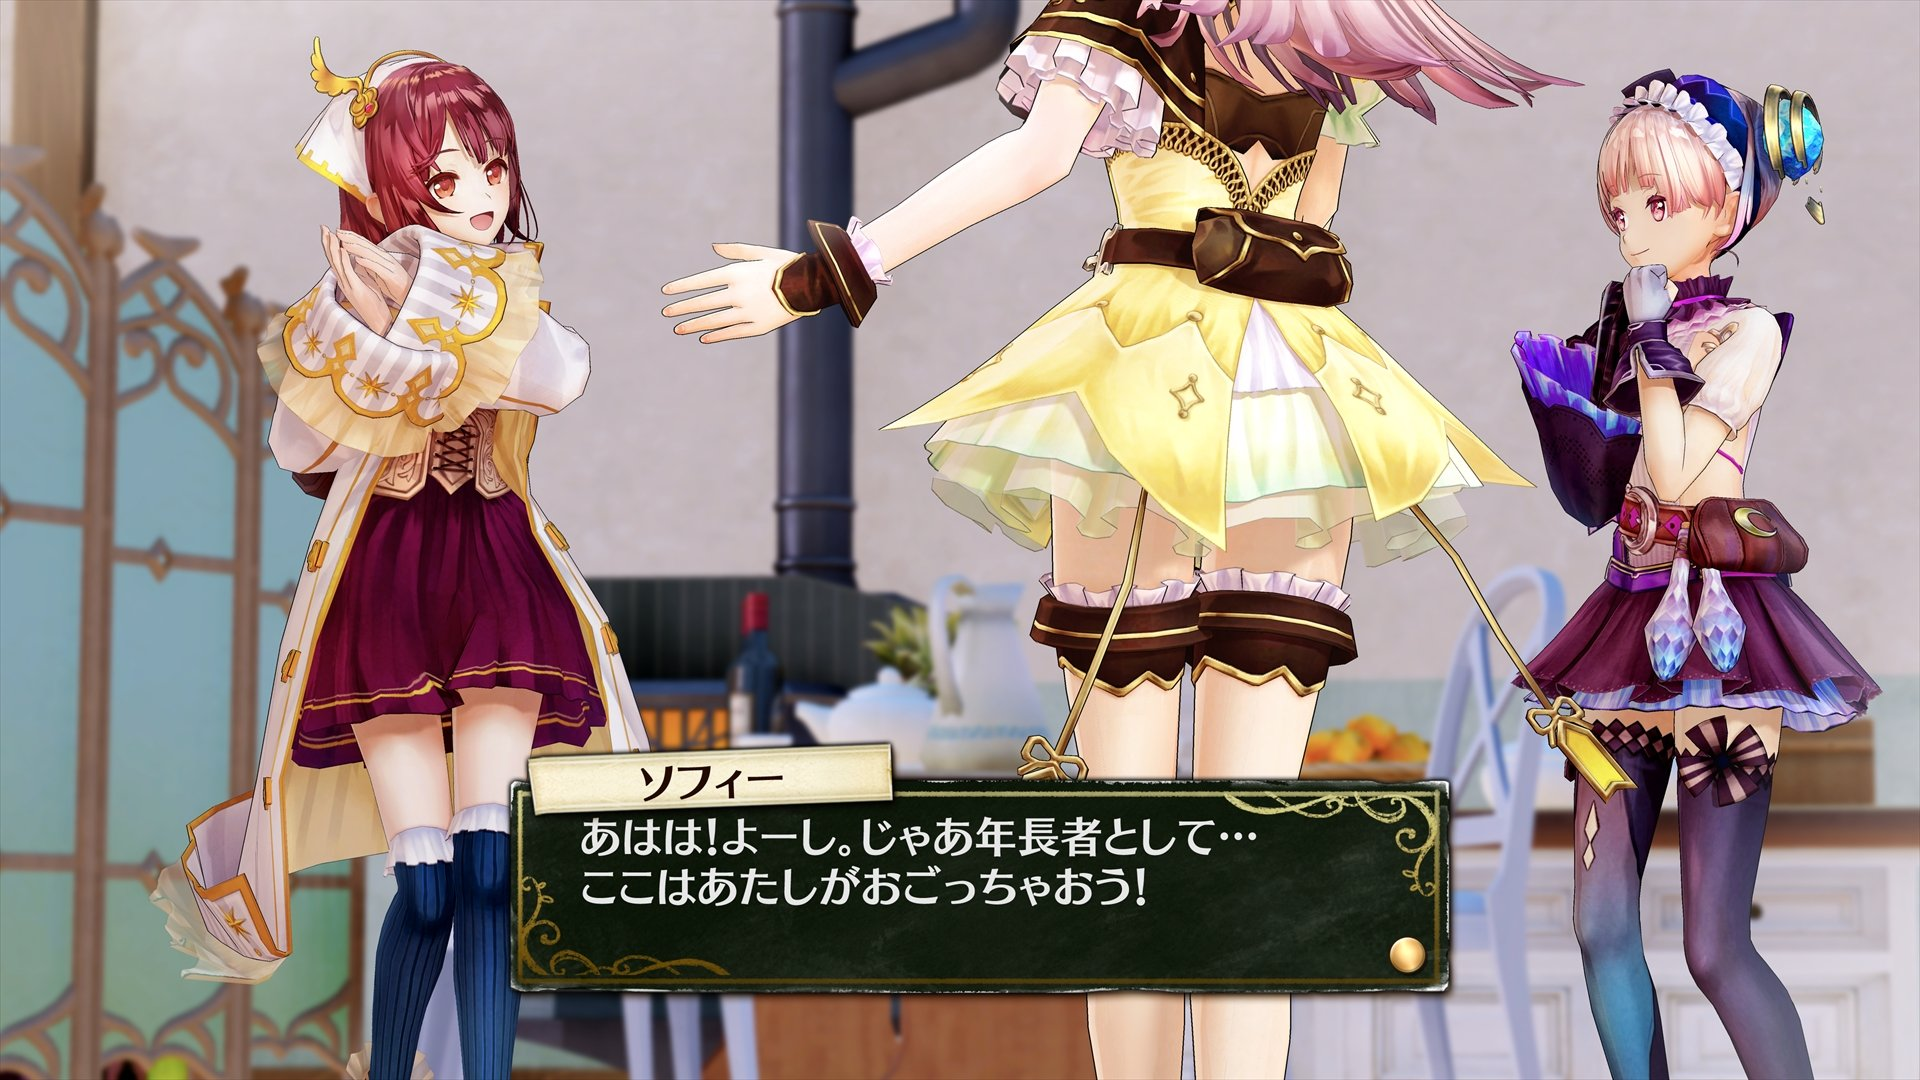 Yes, the new Atelier game is coming west screenshot